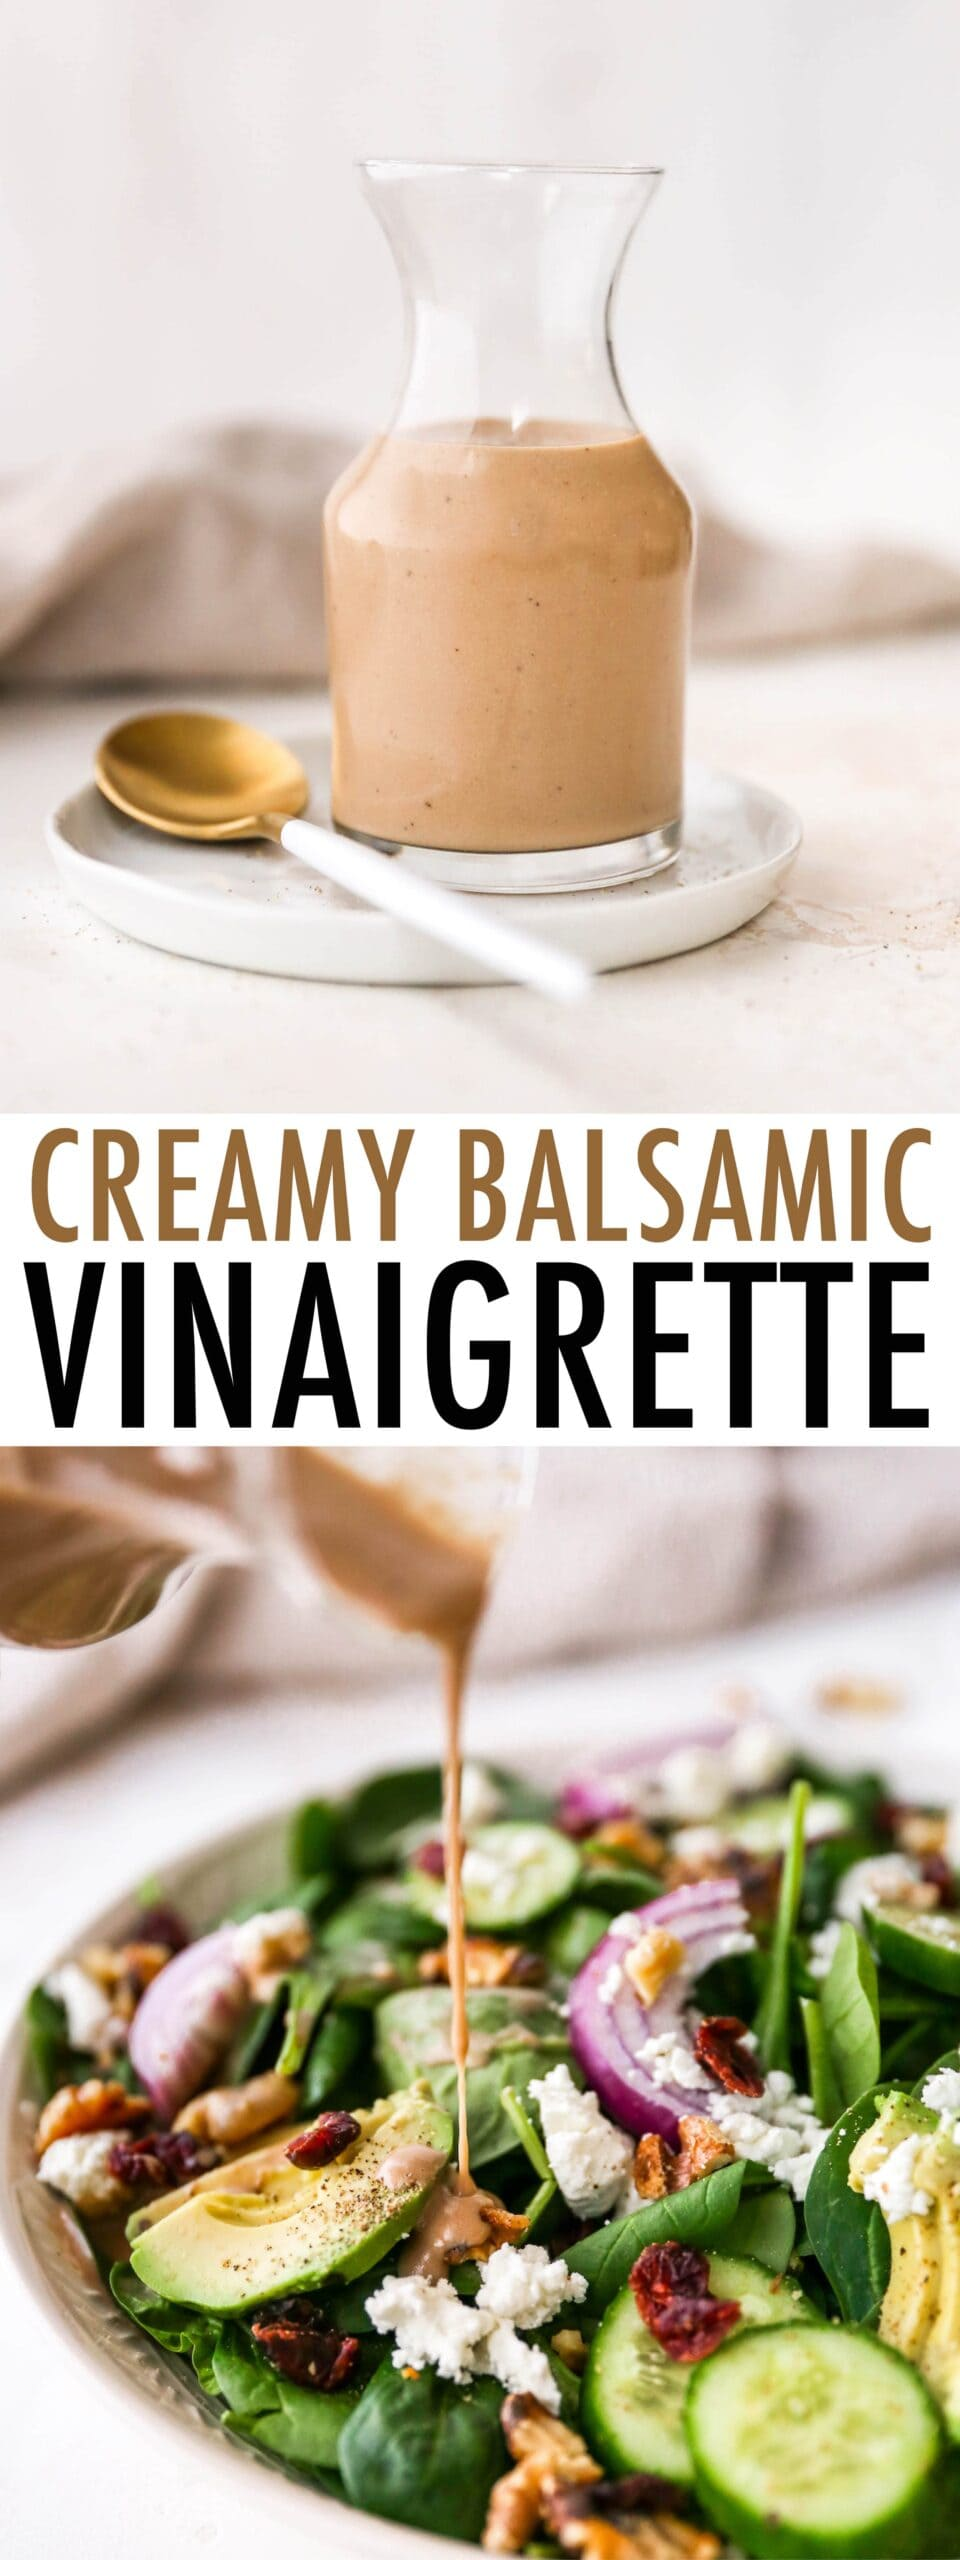 Photo of creamy balsamic dressing in a jar and being drizzled over a salad.